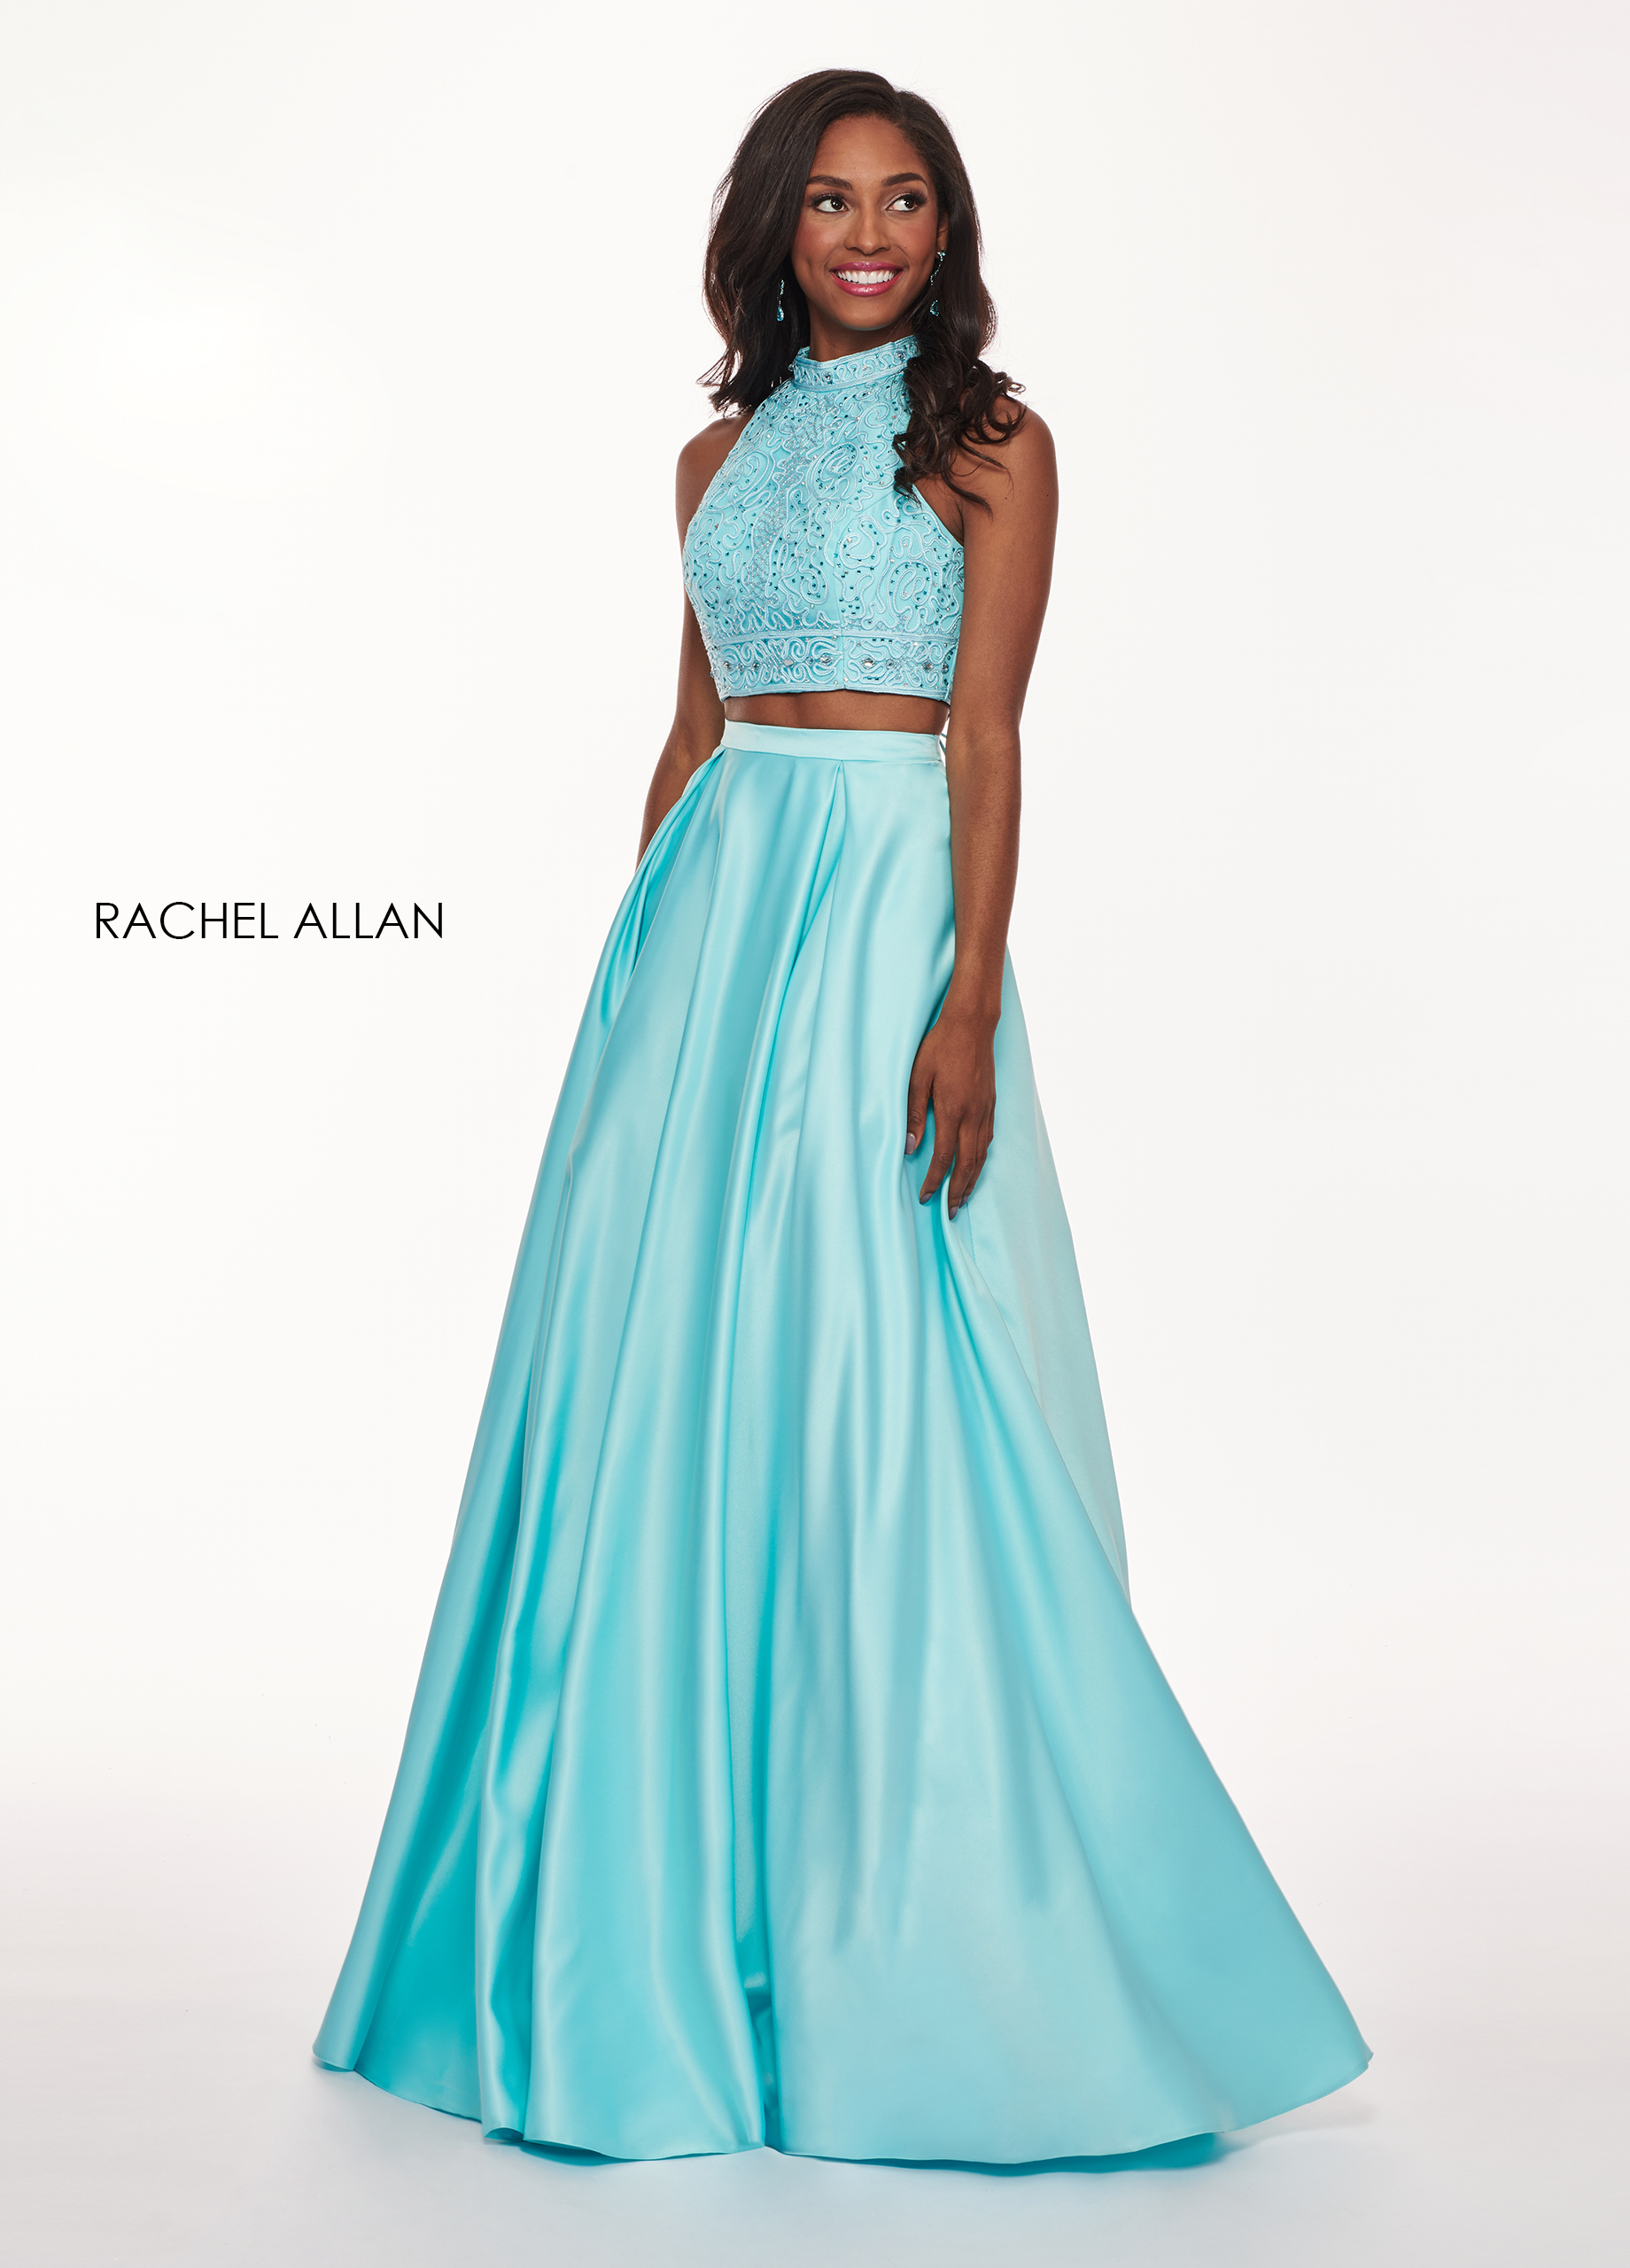 Halter Two-Piece Prom Dresses in Blue Color